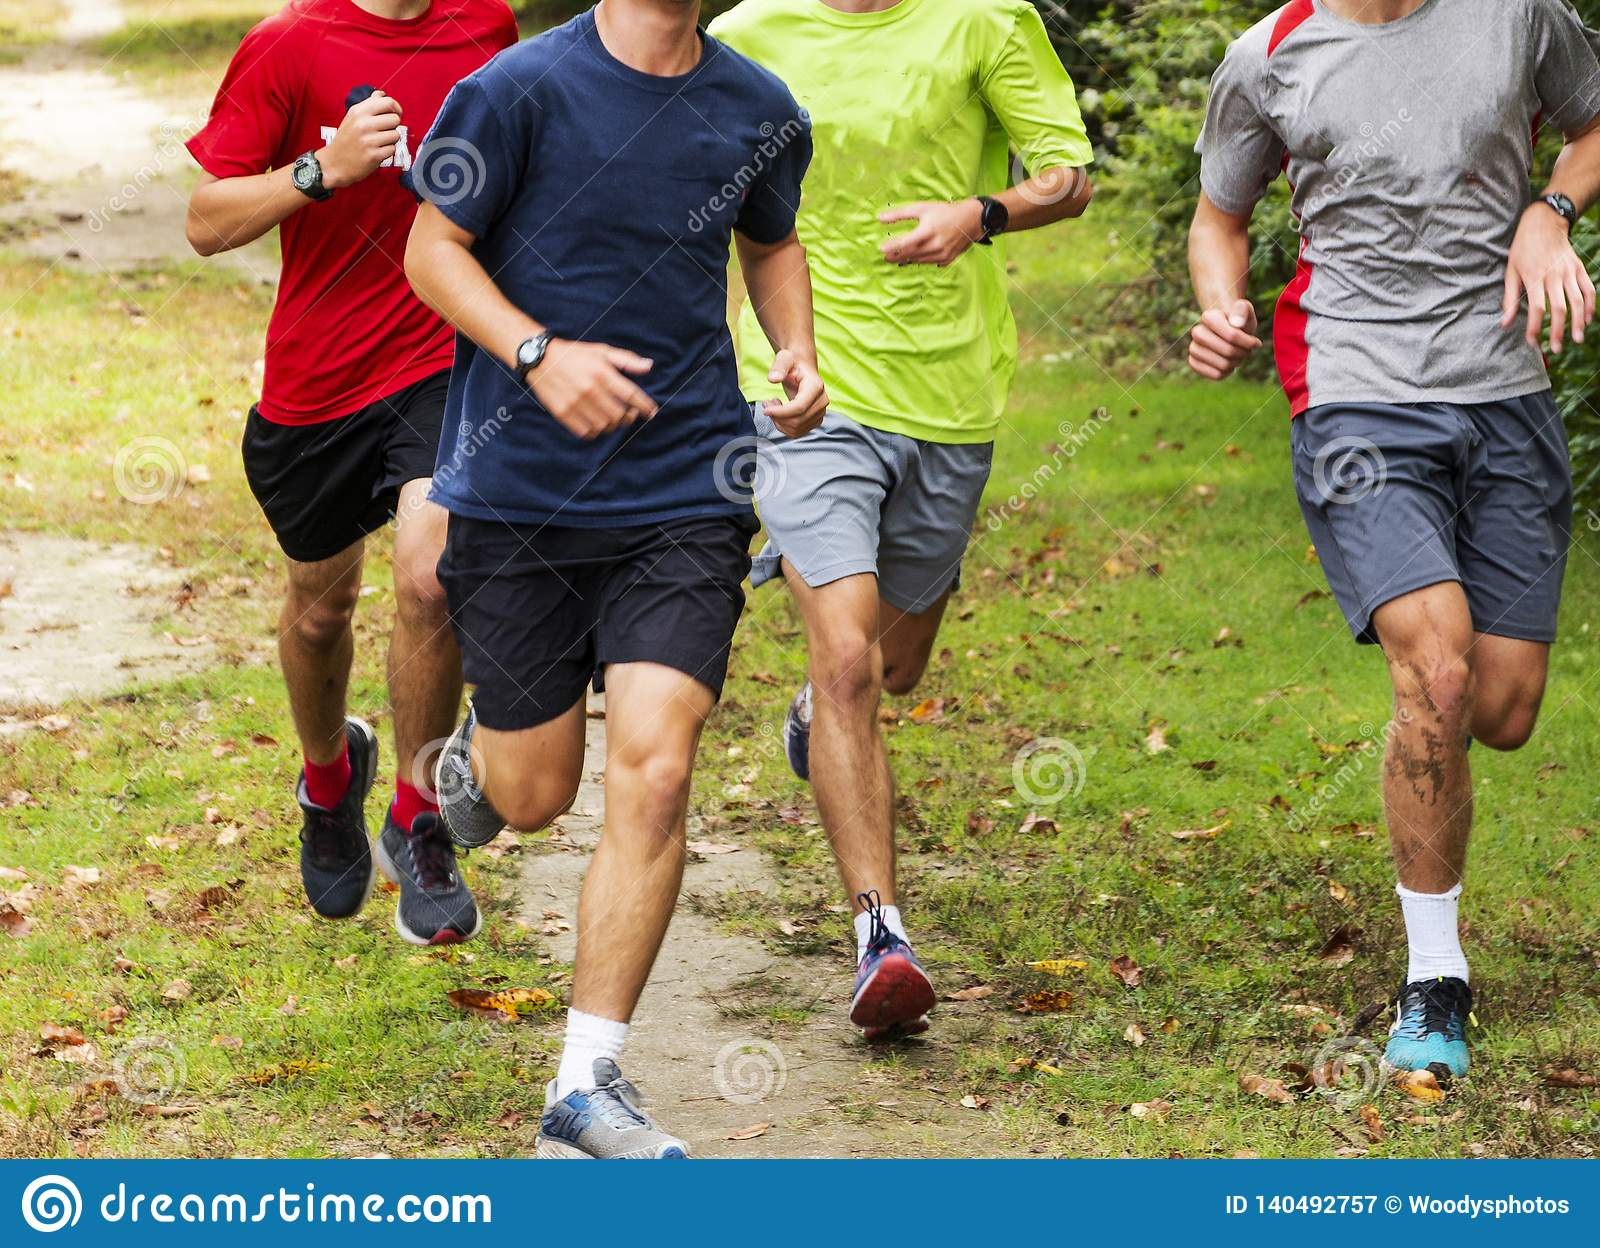 Group Of Boys Running Together On Grass Path Stock Image - Image of  healthy, aerobic: 140492757